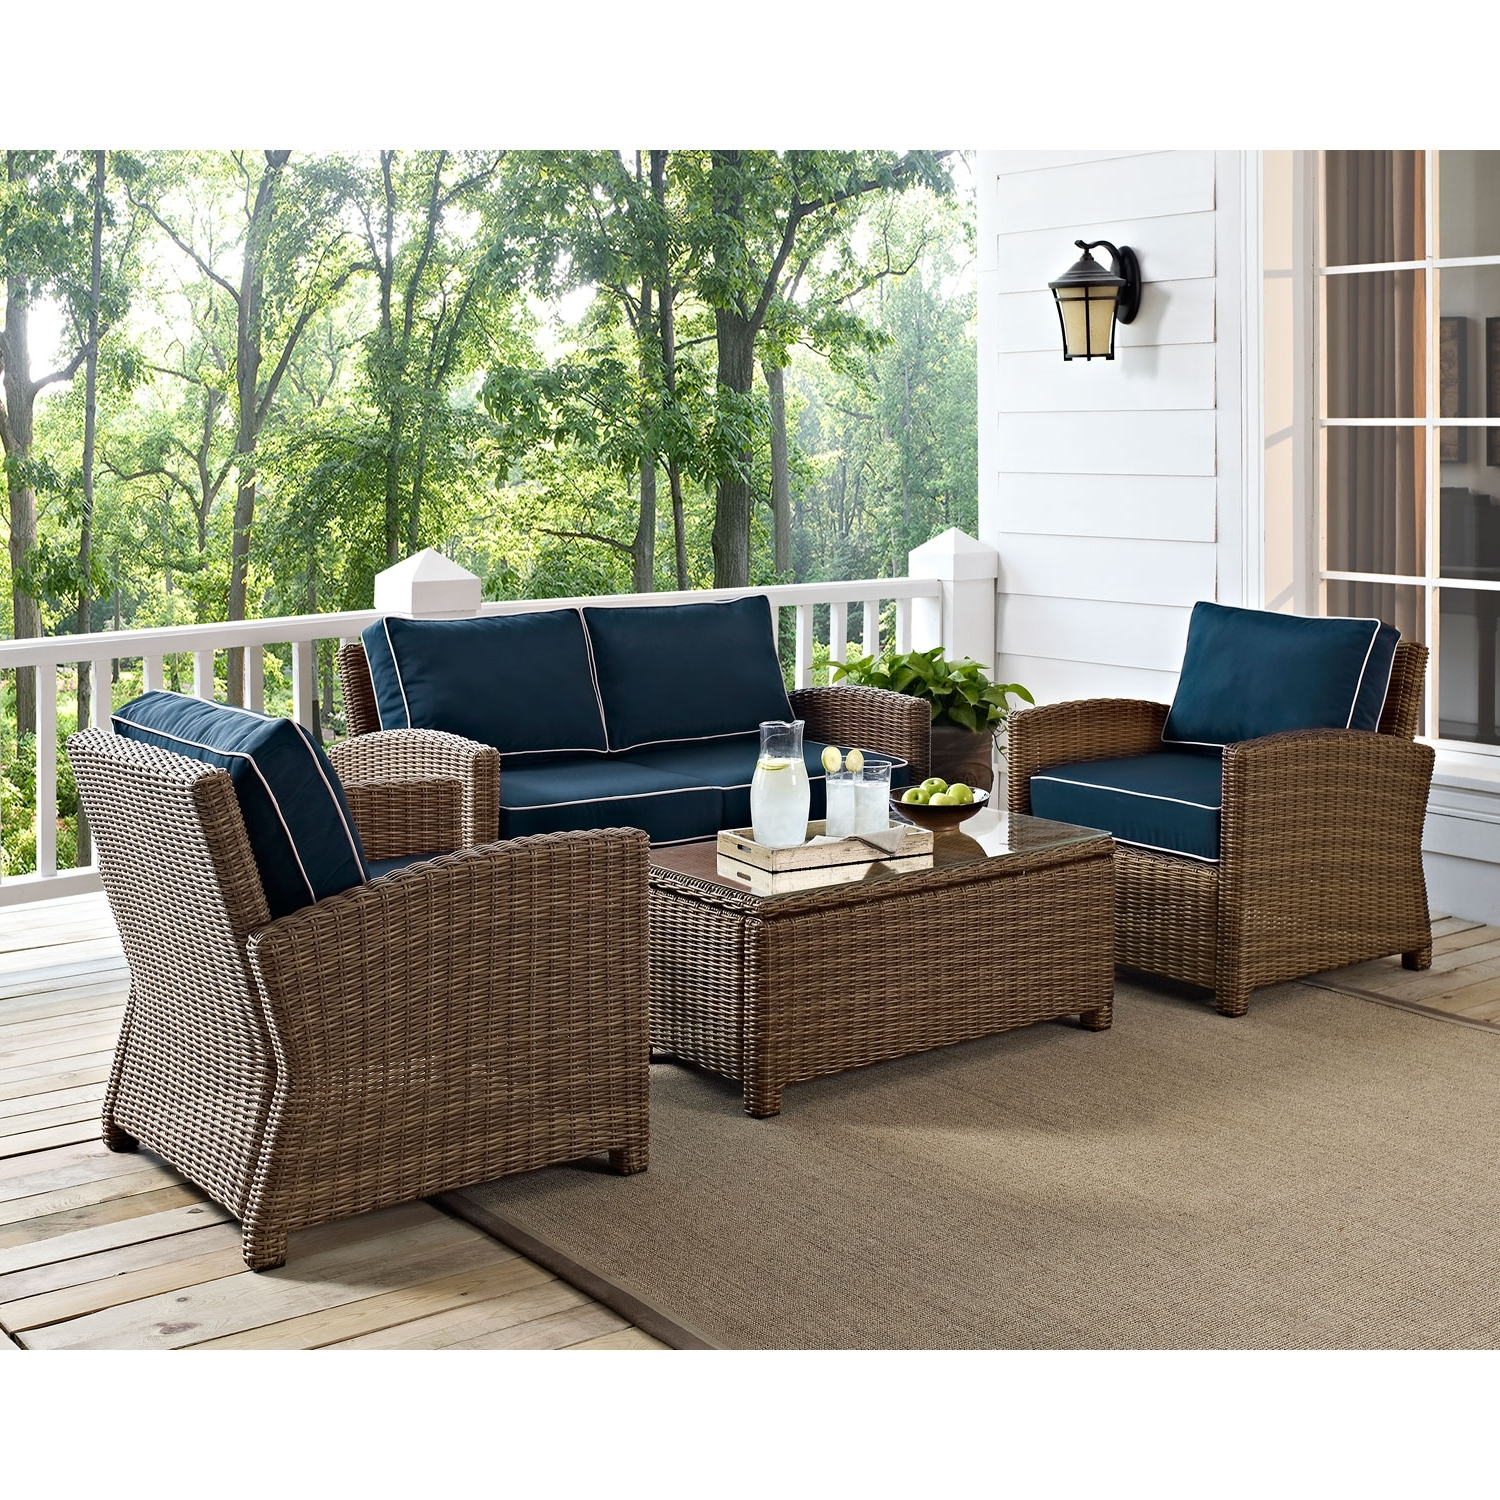 Well Known Wicker 4pc Patio Conversation Sets With Navy Cushions In Crosley Furniture Bradenton 4 Piece Outdoor Wicker Seating Set With (View 2 of 20)